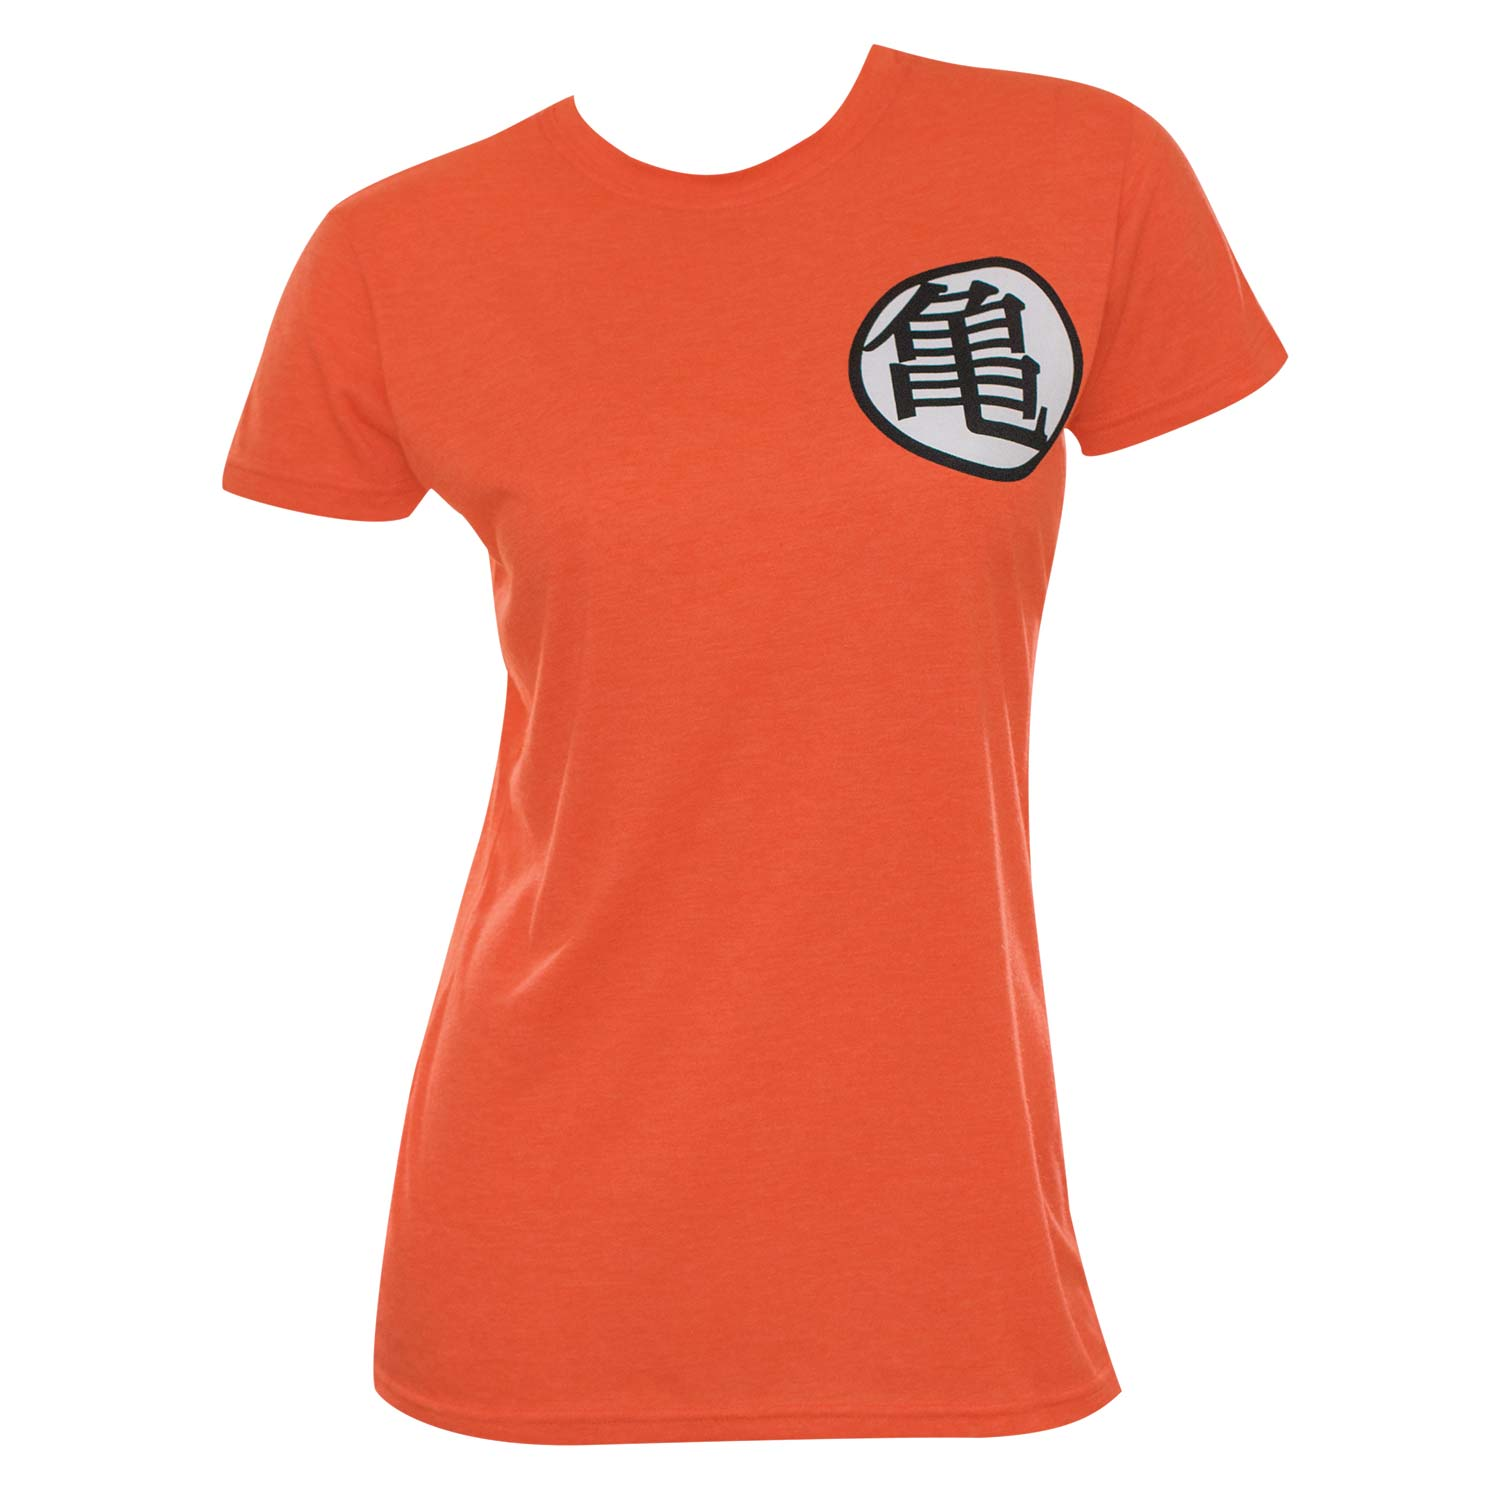 Women's Cotton Blend Dragonball Z Kame Symbol T-Shirt